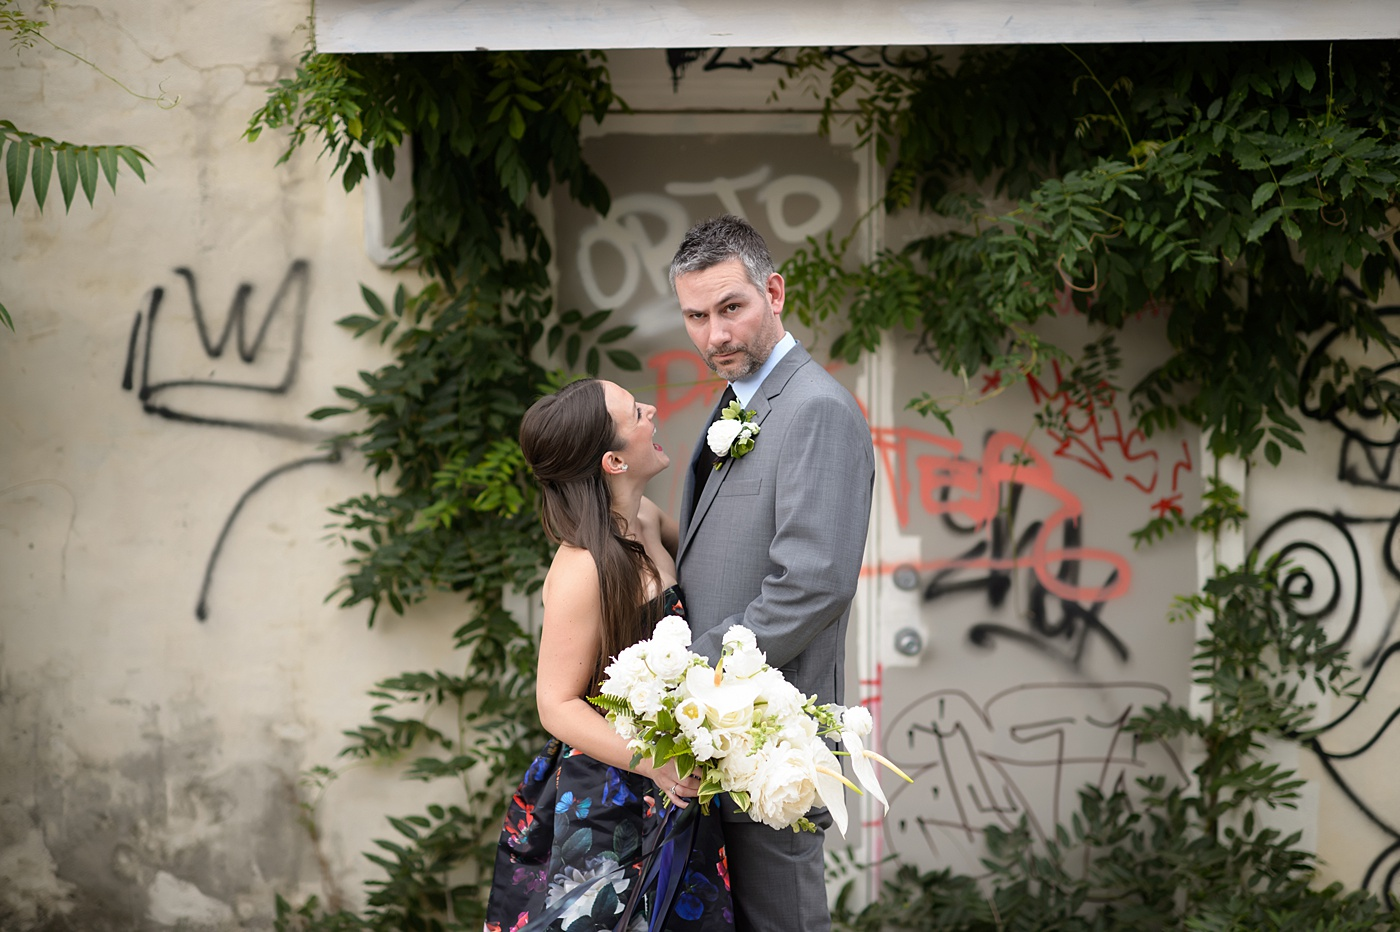 Raleigh, North Carolina Wedding Photographer, Mikkel Paige's elopement, photographed by Brian Mullins Photography. Flowers by @meristemfloral. Black floral gown from Parker. Beauty by Wink Hair and Makeup. Ring by Susie Saltzman.